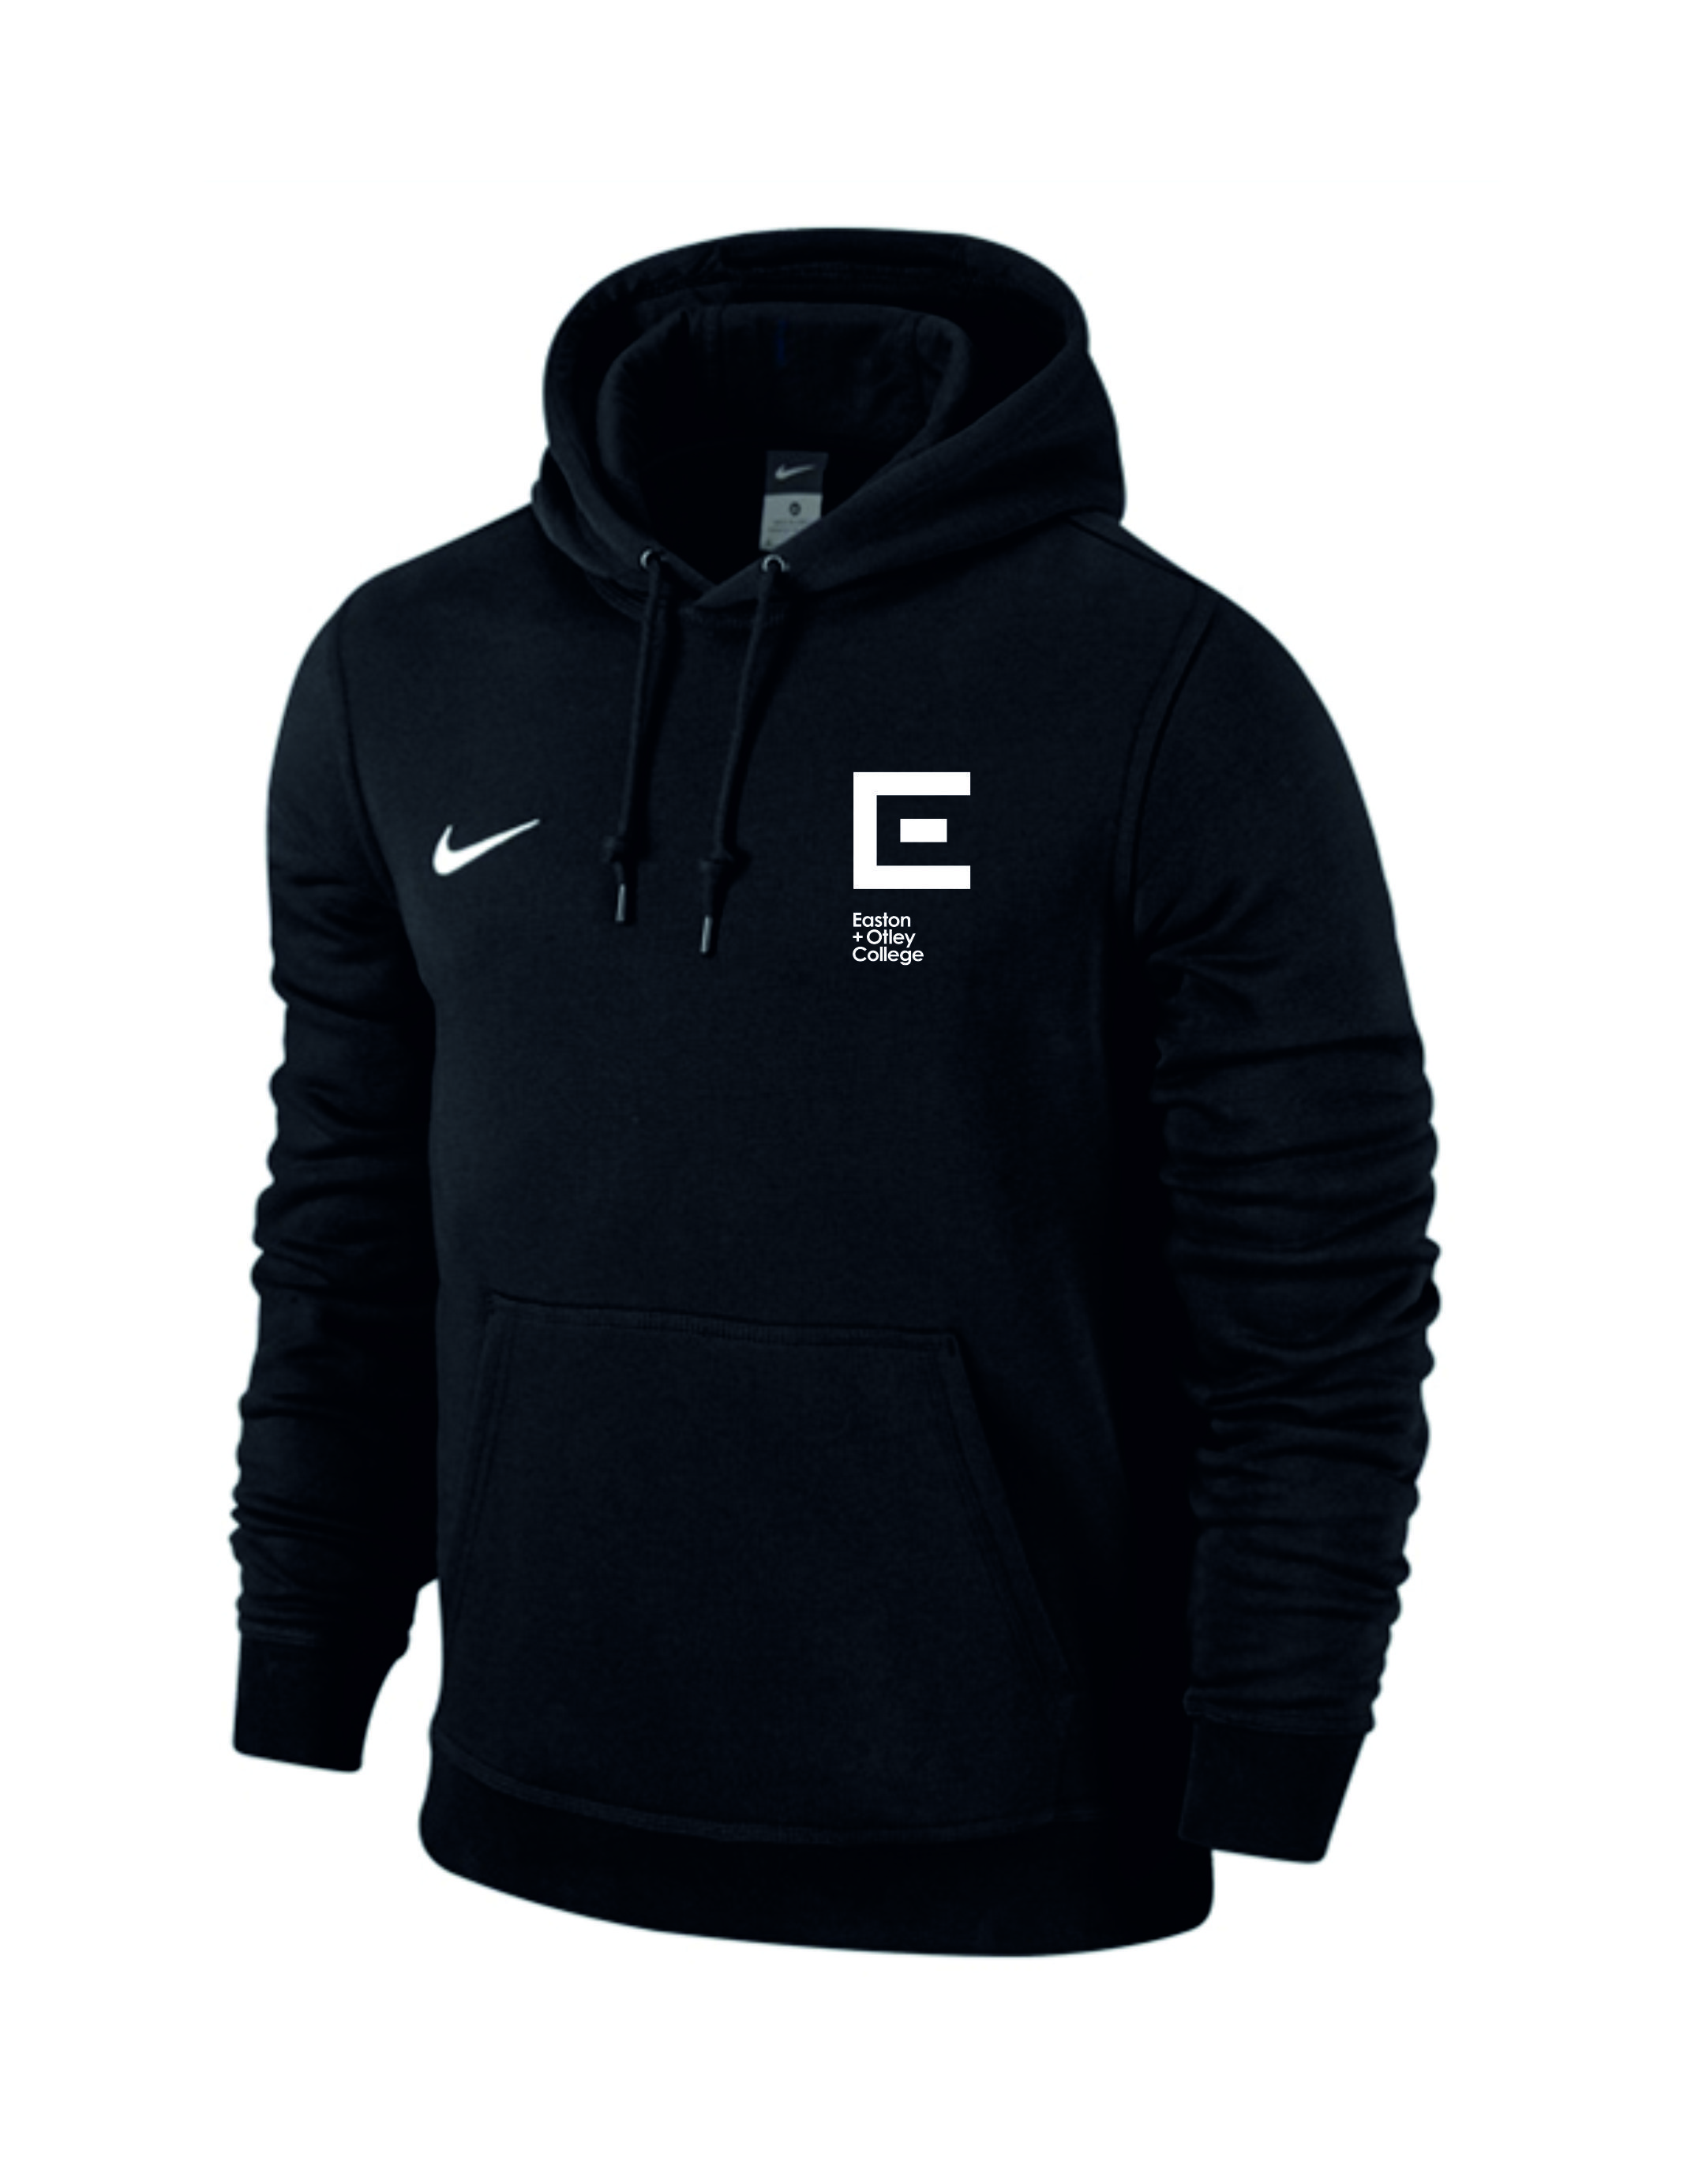 Easton Academy Hoody